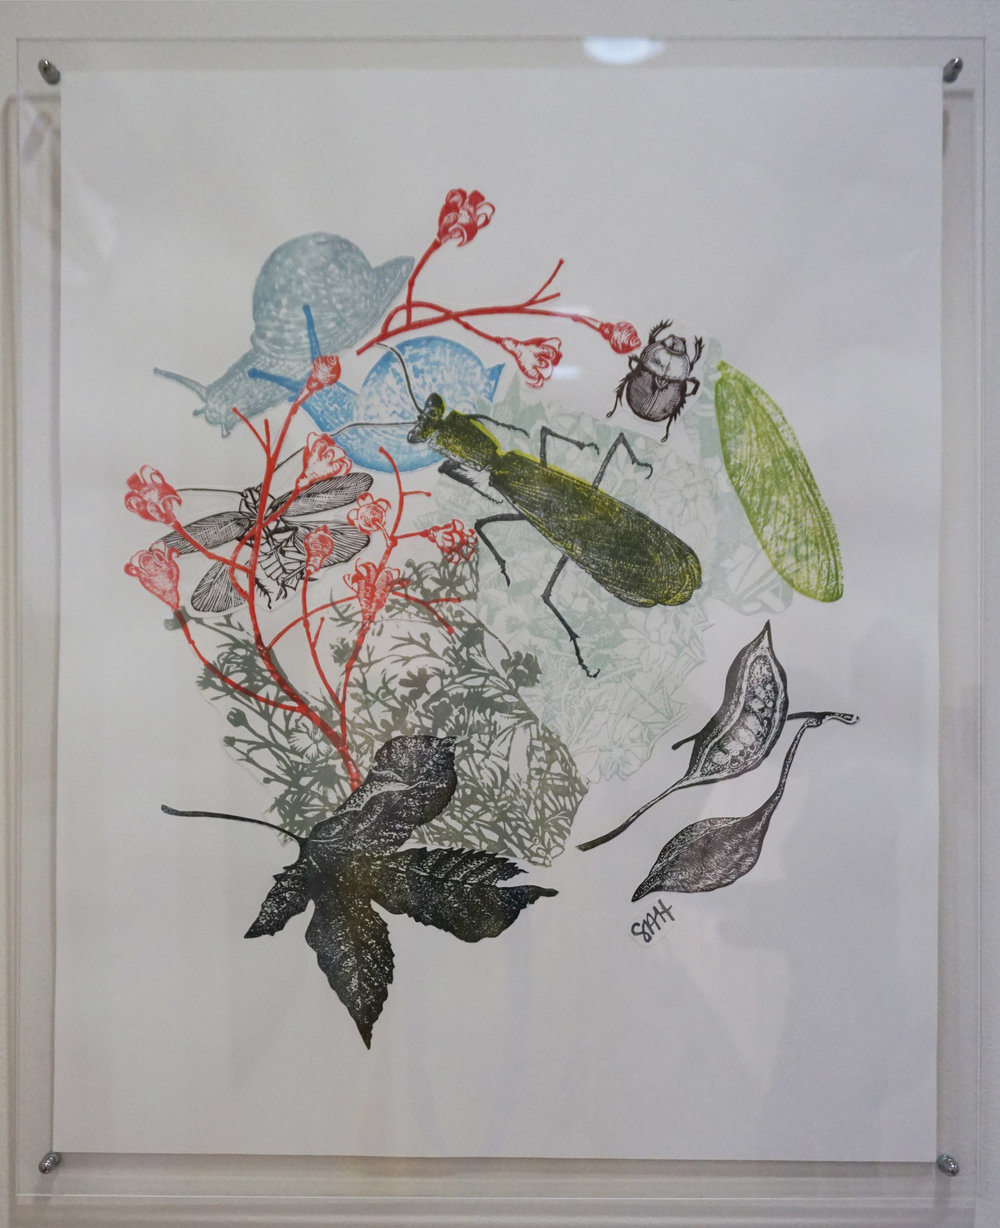 46. Sandra Hall,  From the Proof Drawer , 2015, Lino print collage $350